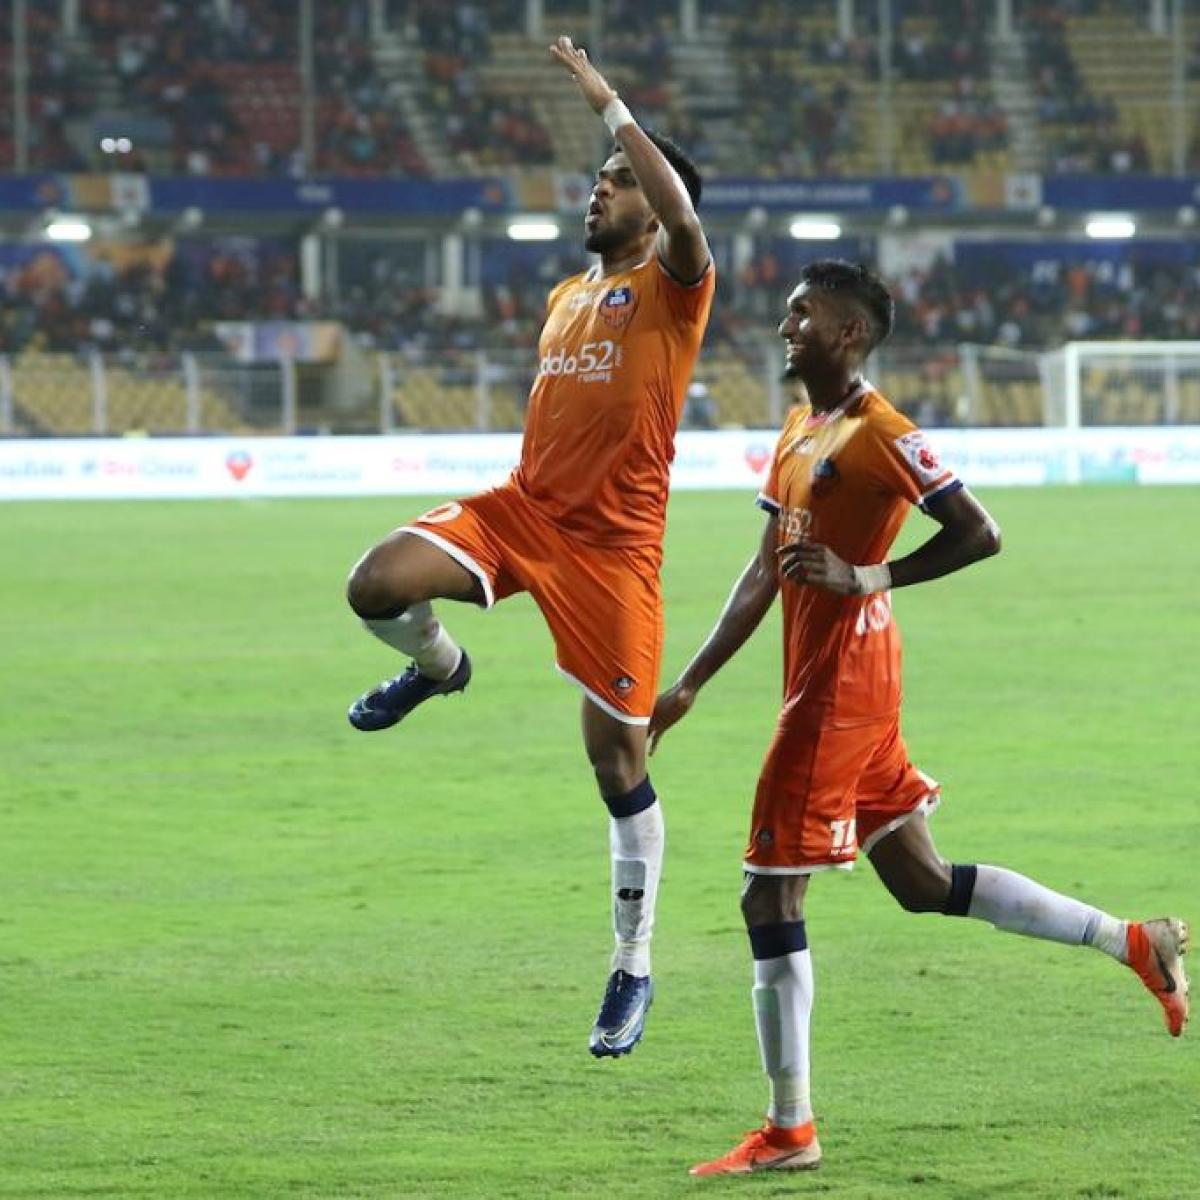 Coromina's brace fires Goa to top of ISL table